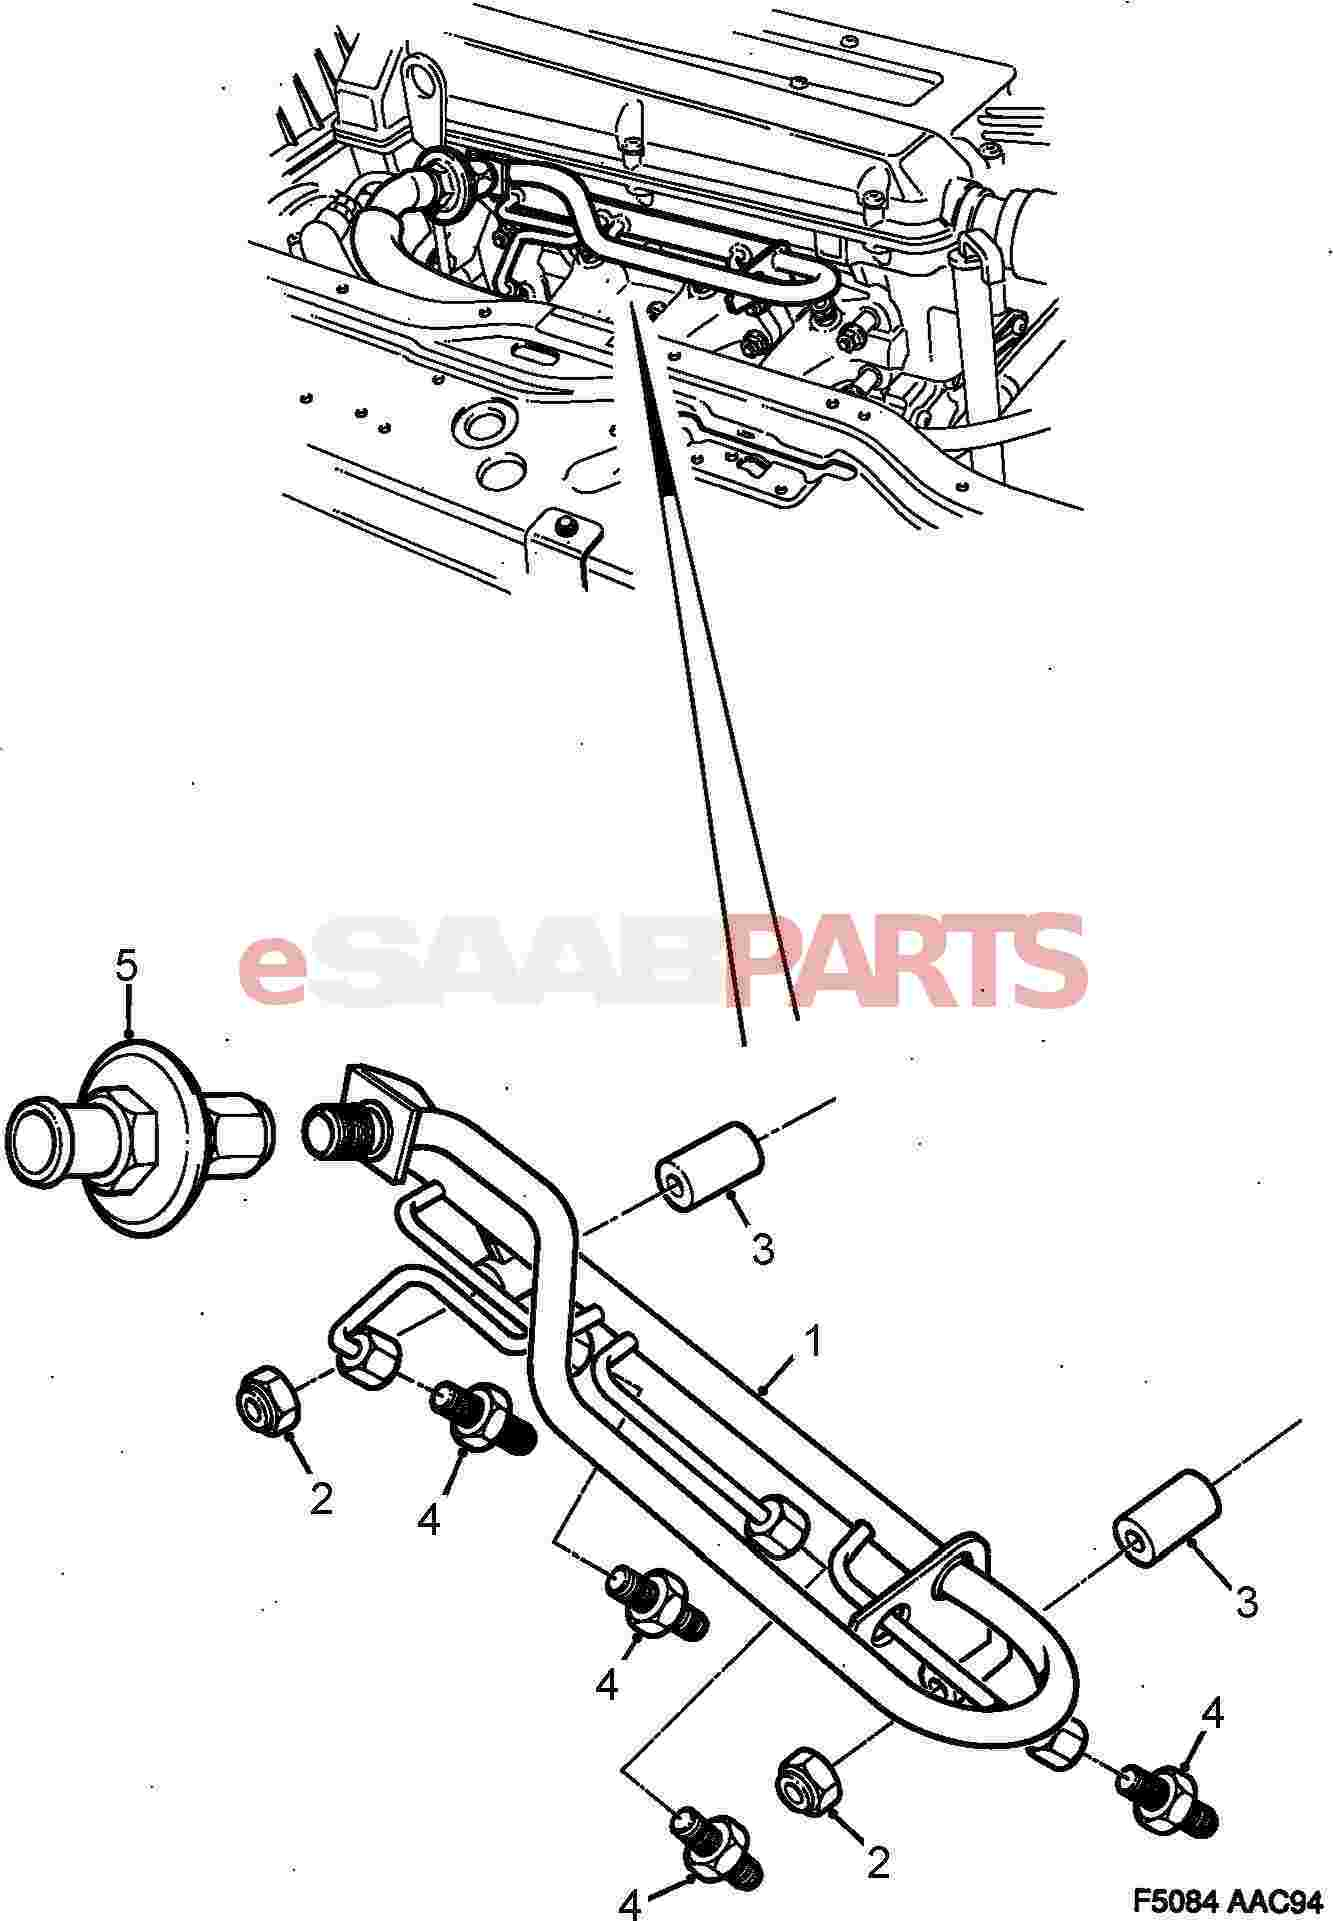 Cadillac Dts Wiring Diagrams as well Saab 9 3 Parts Catalog together with Saab 2 3 Turbo Engine Diagram as well Saab 9000 2 3 2001 Specs And Images additionally Saab Wiring Diagrams. on 1997 saab 9000 diagram